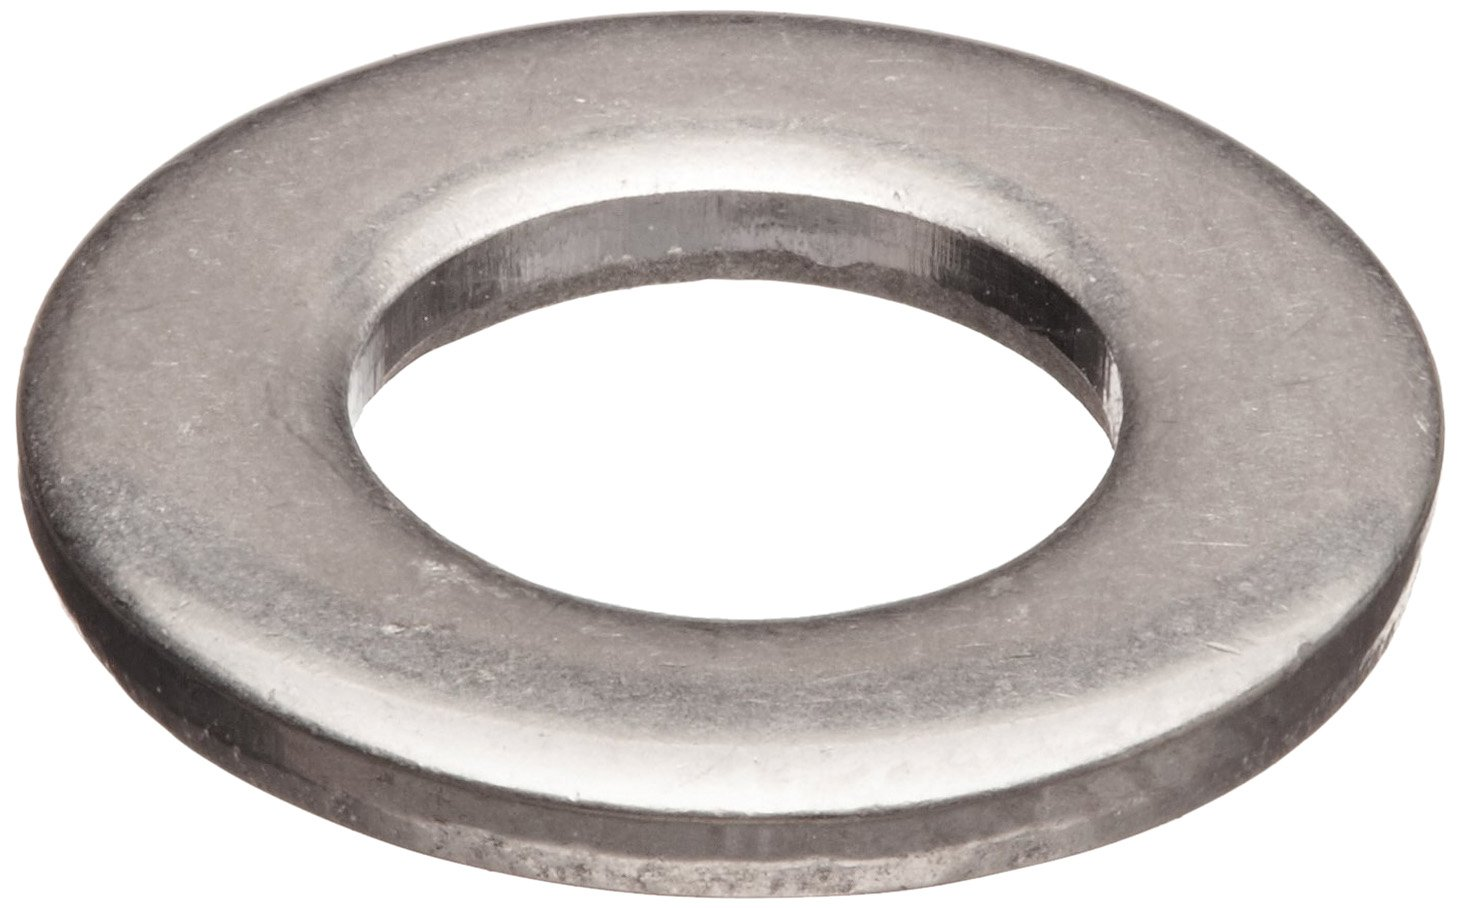 #8 Hole Size Made in US 0.515 ID 18-8 Stainless Steel Flat Washer 0.515 ID 0.875 OD 0.063 Nominal Thickness Accurate Manufacturing AN960-C816BULK 0.875 OD 0.063 Nominal Thickness Pack of 25